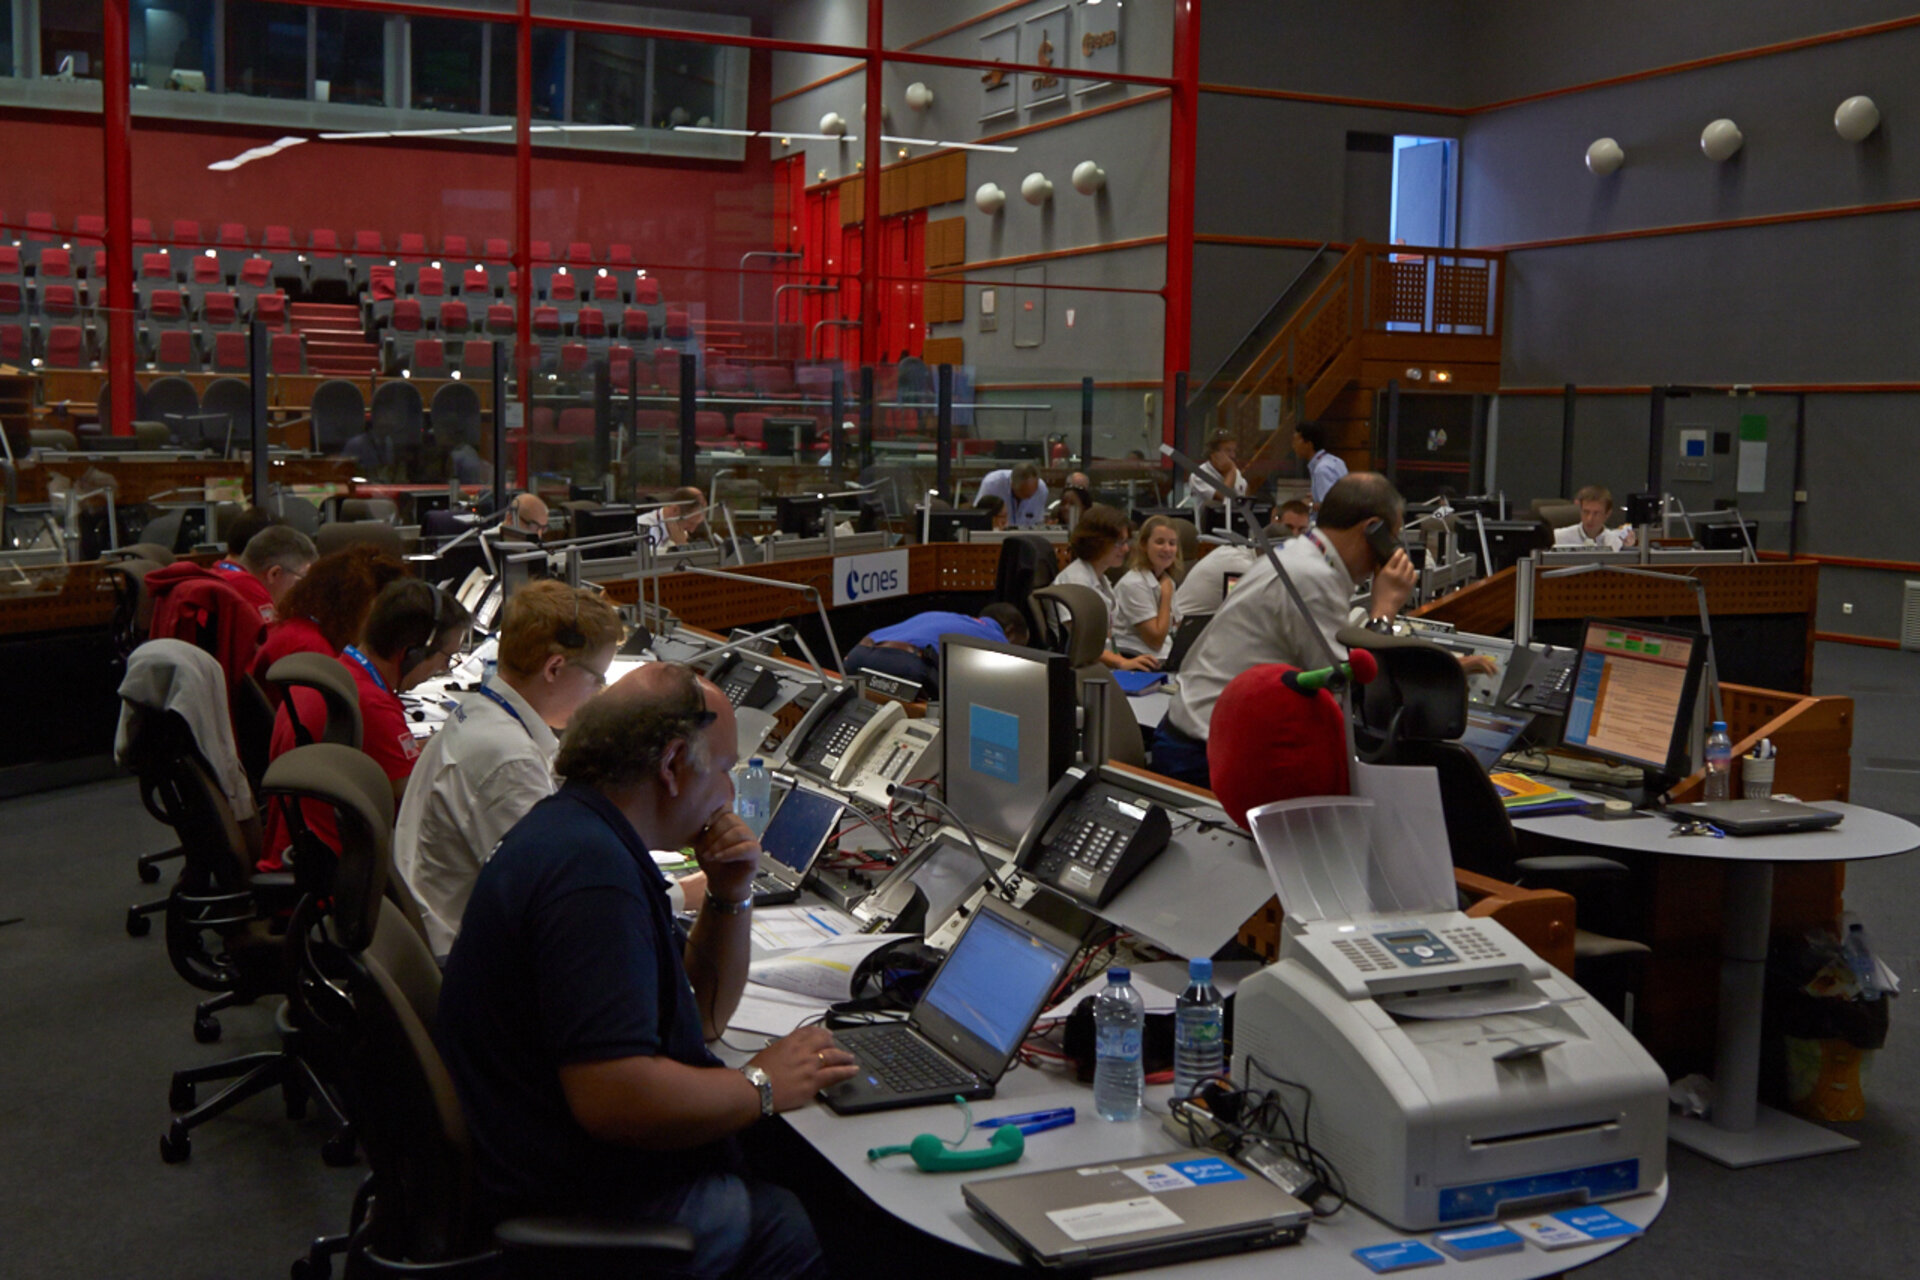 Mission control room in Kourou